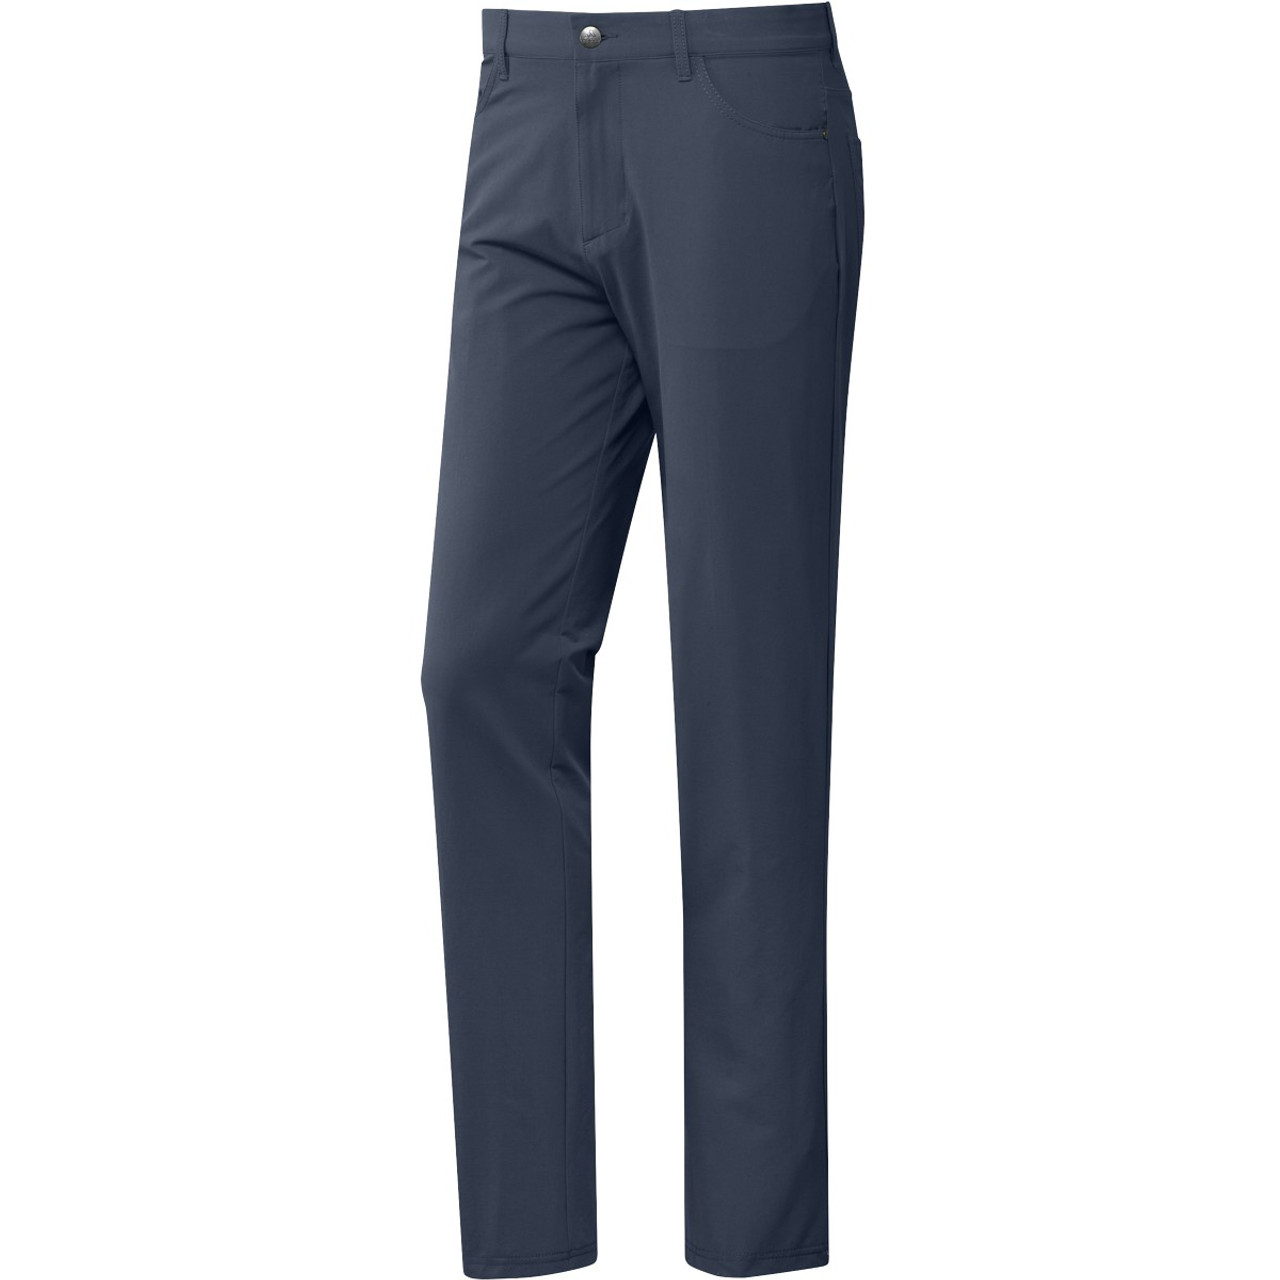 Adidas GO-TO Five Pocket Pants- Crew Navy